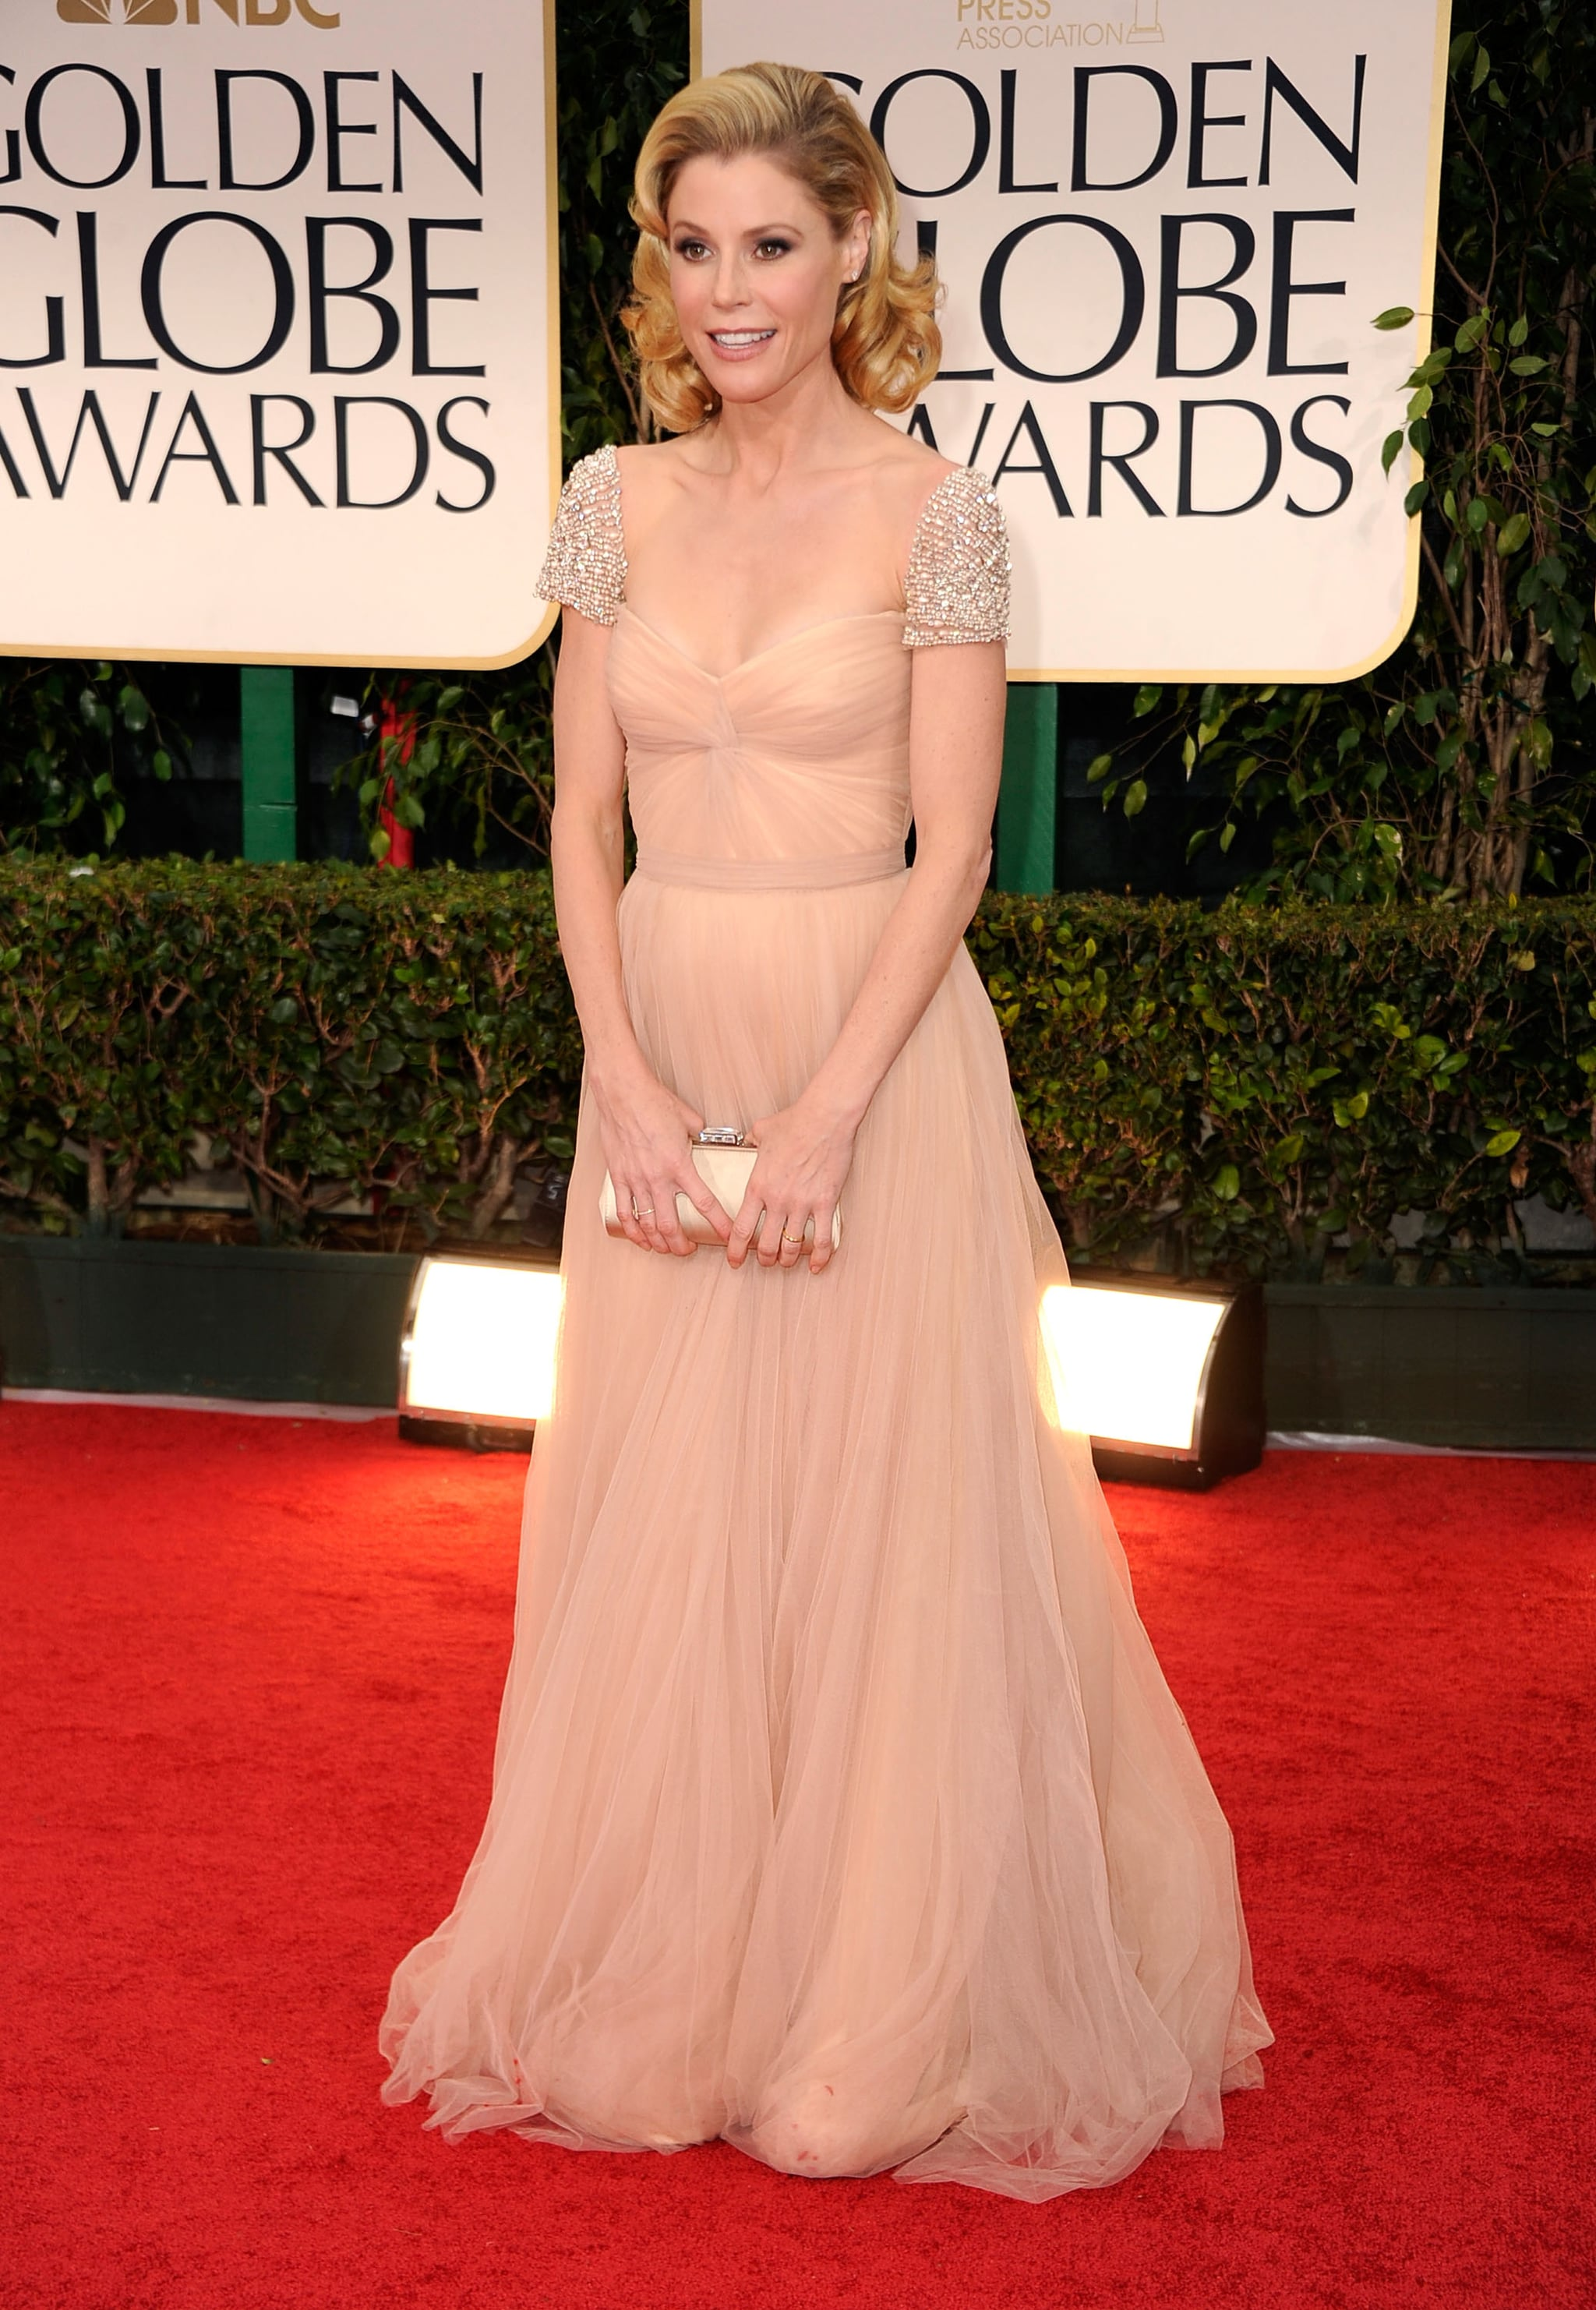 Julie Bowen in Reem Acra at the Golden Globes.